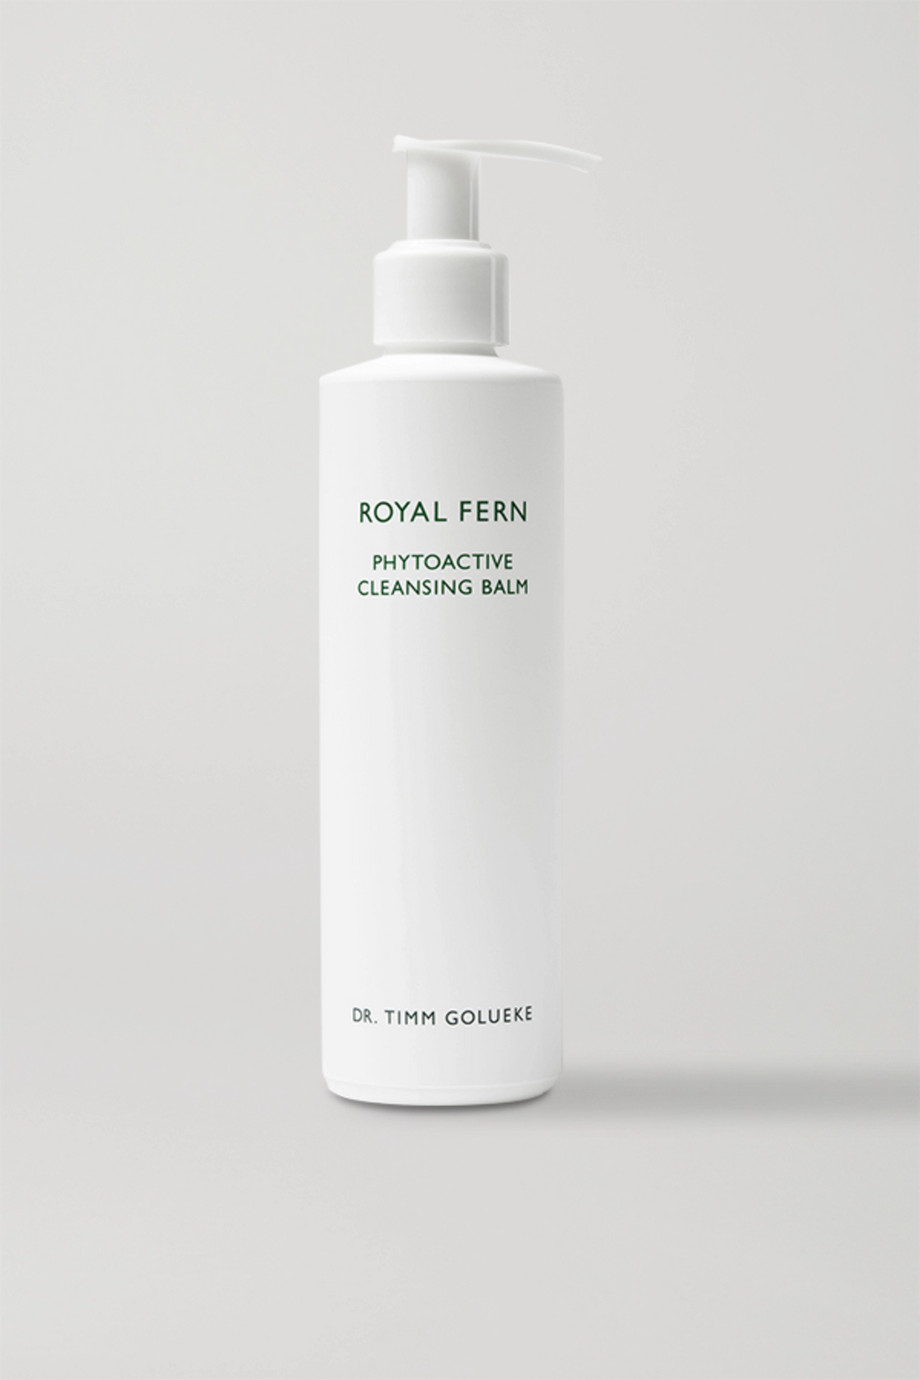 Royal Fern Phytoactive Cleansing Balm, 200 ml – Reinigungsbalsam